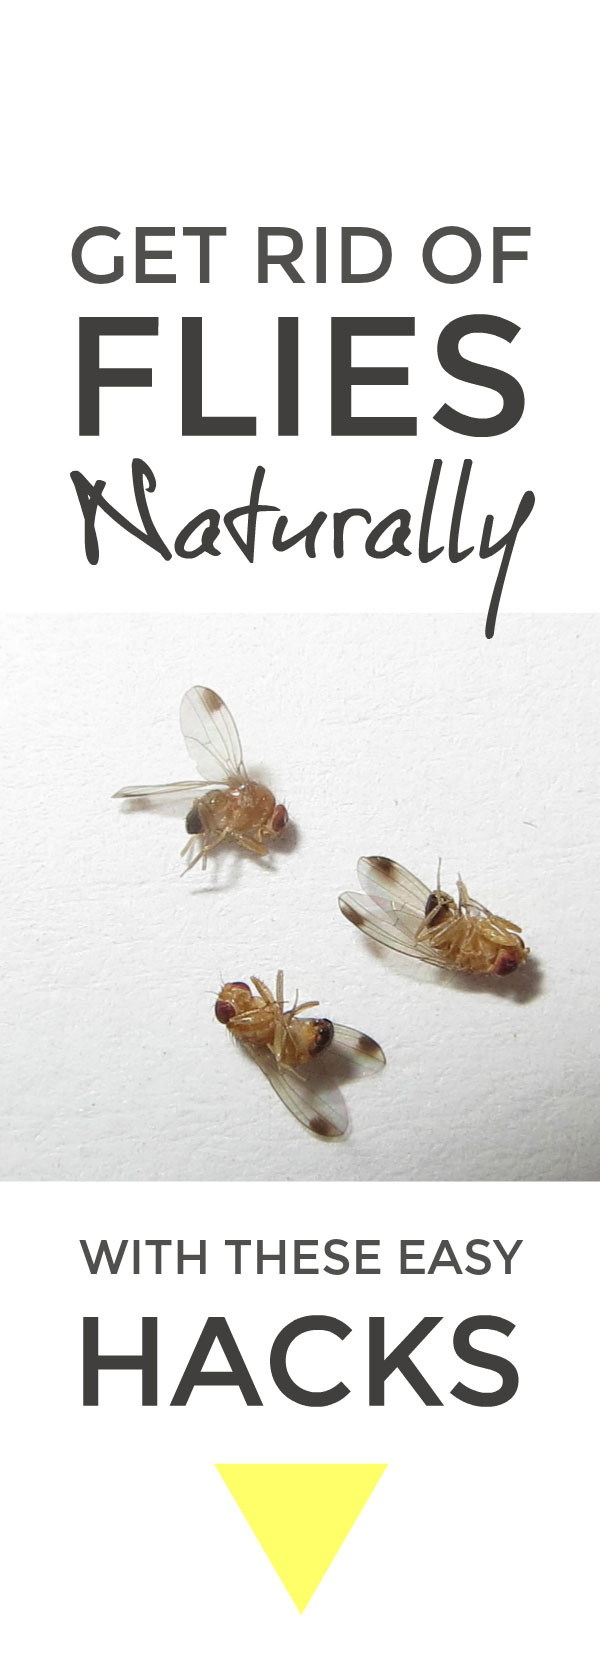 Get rid of flies easily but naturally without nasty toxic sprays that harm other wildlife #hacks #cleaninghacks #lifehacks #pests #naturalcleaning #green #greencleaning